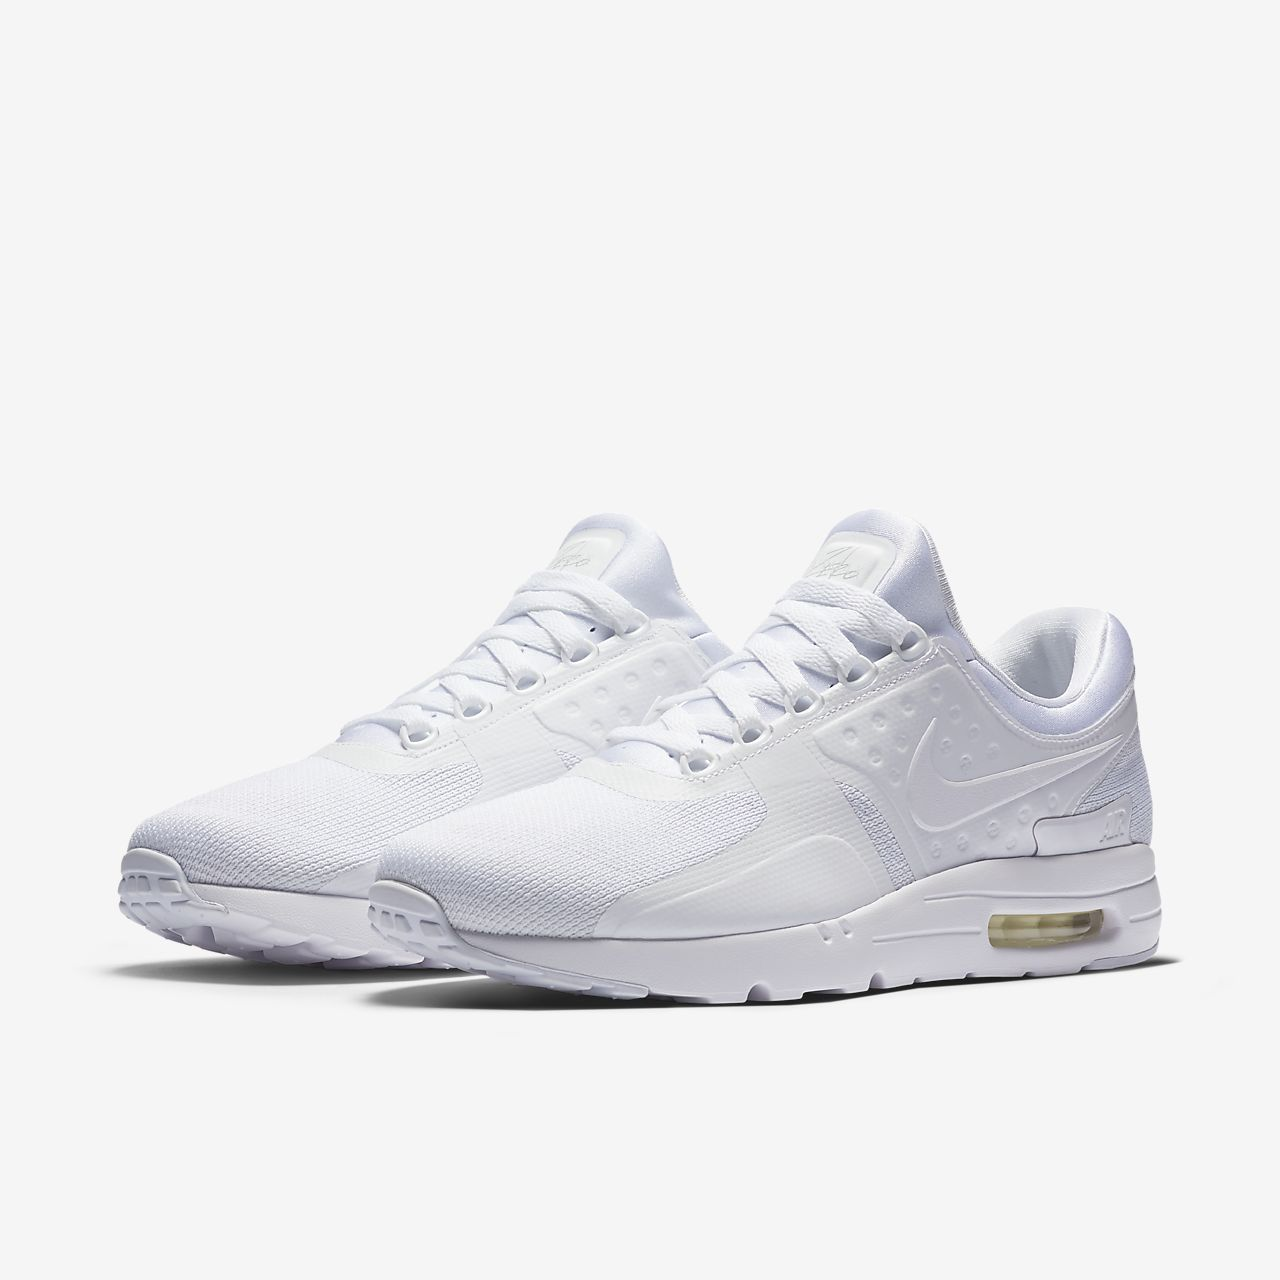 ... Nike Air Max Zero Essential Men's Shoe